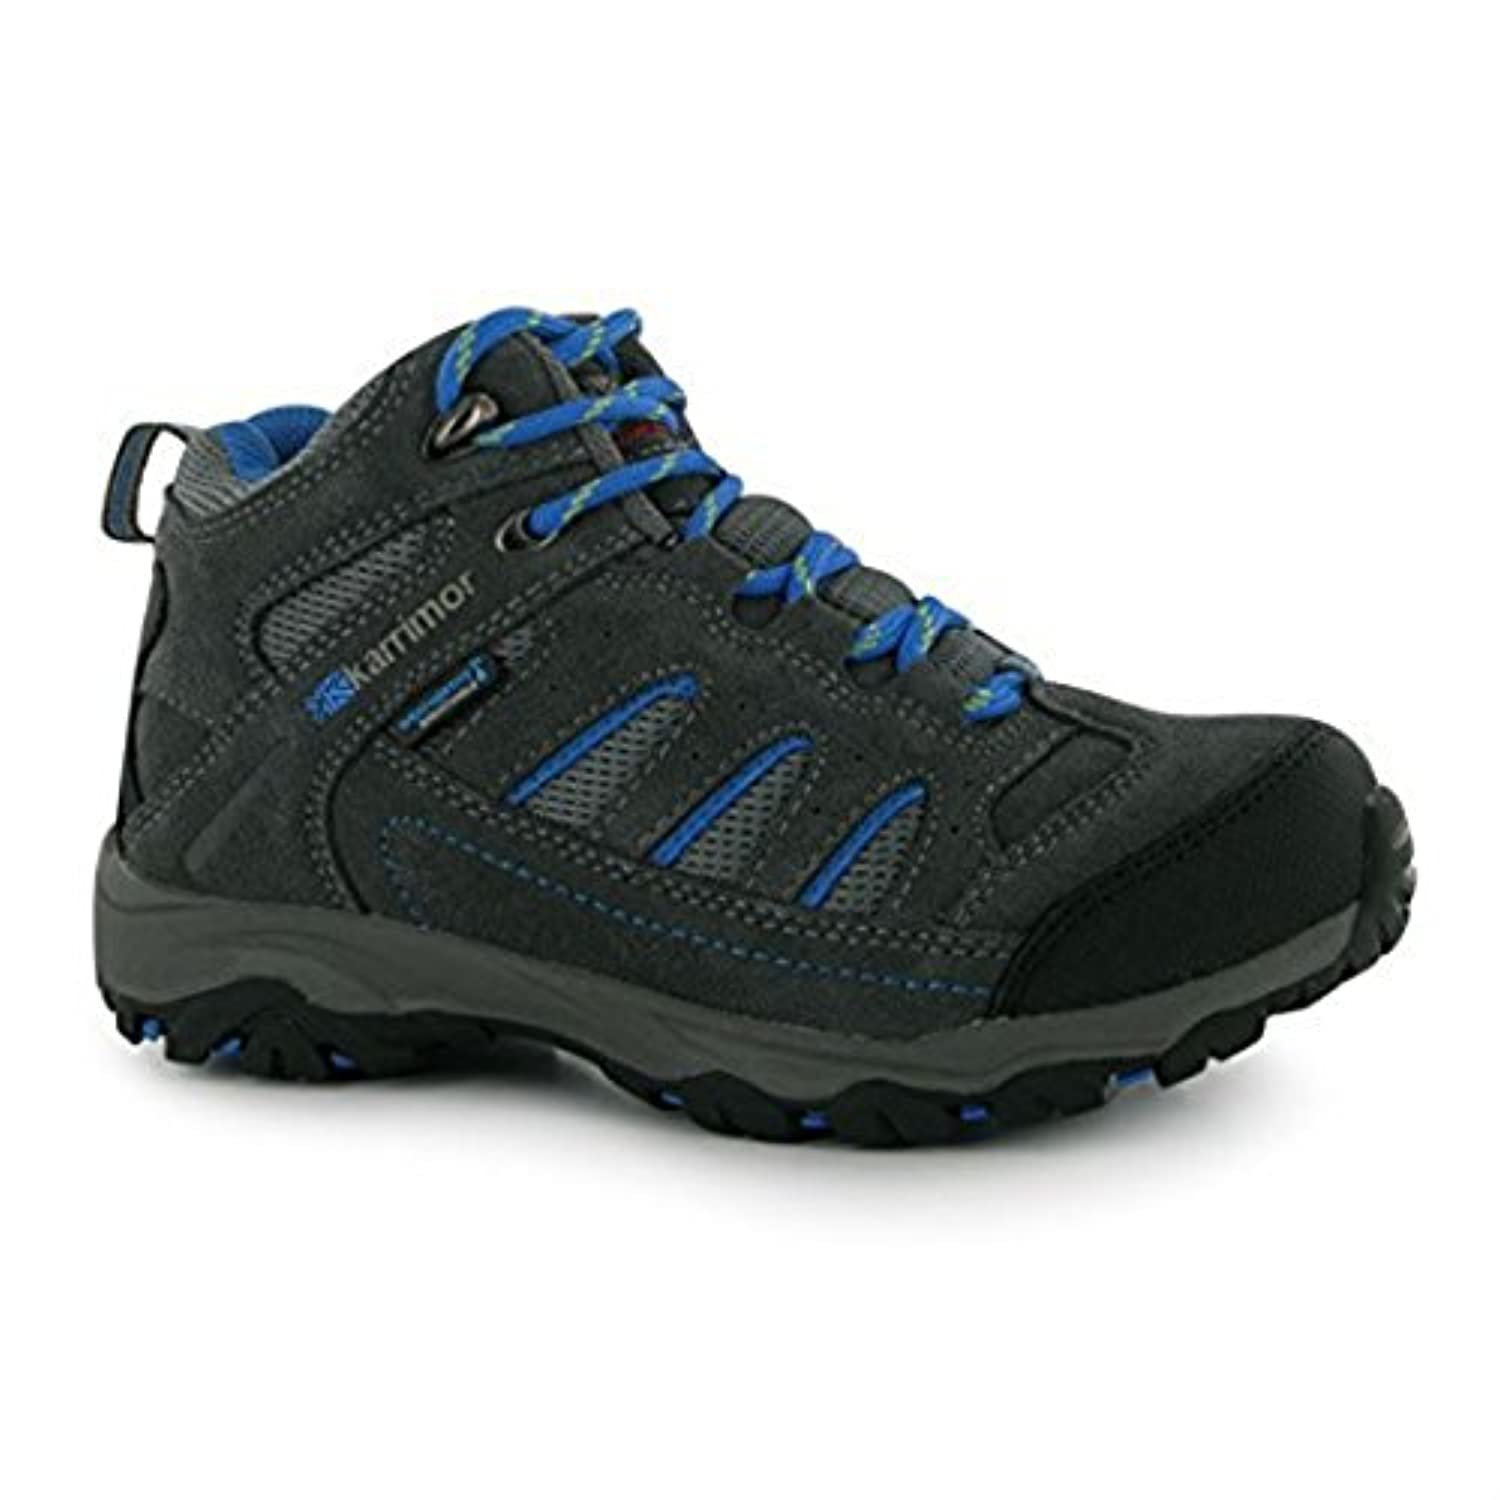 Karrimor Kids Mount Mid Childrens Walking Boots Boys Trekking Hiking Lace Up Charcoal/Blue UK 1